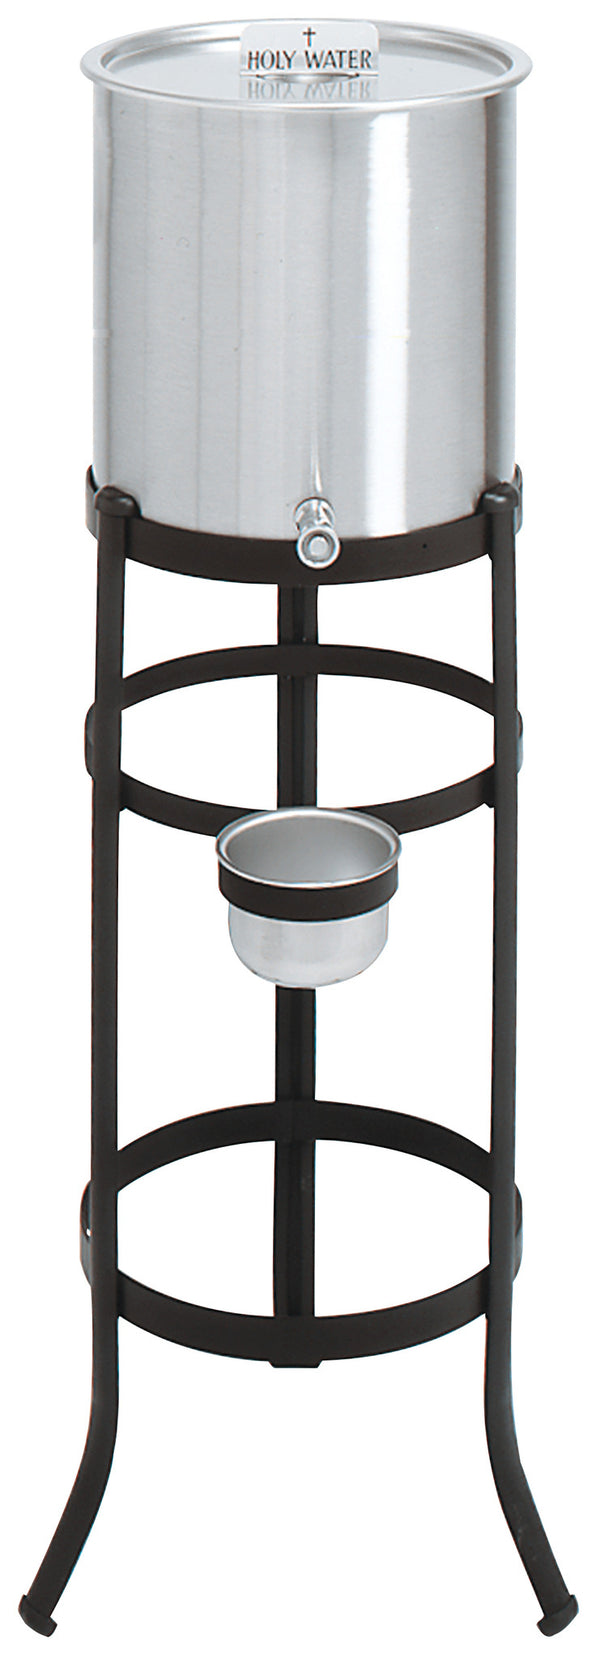 Holy Water Tank and Stand - K445